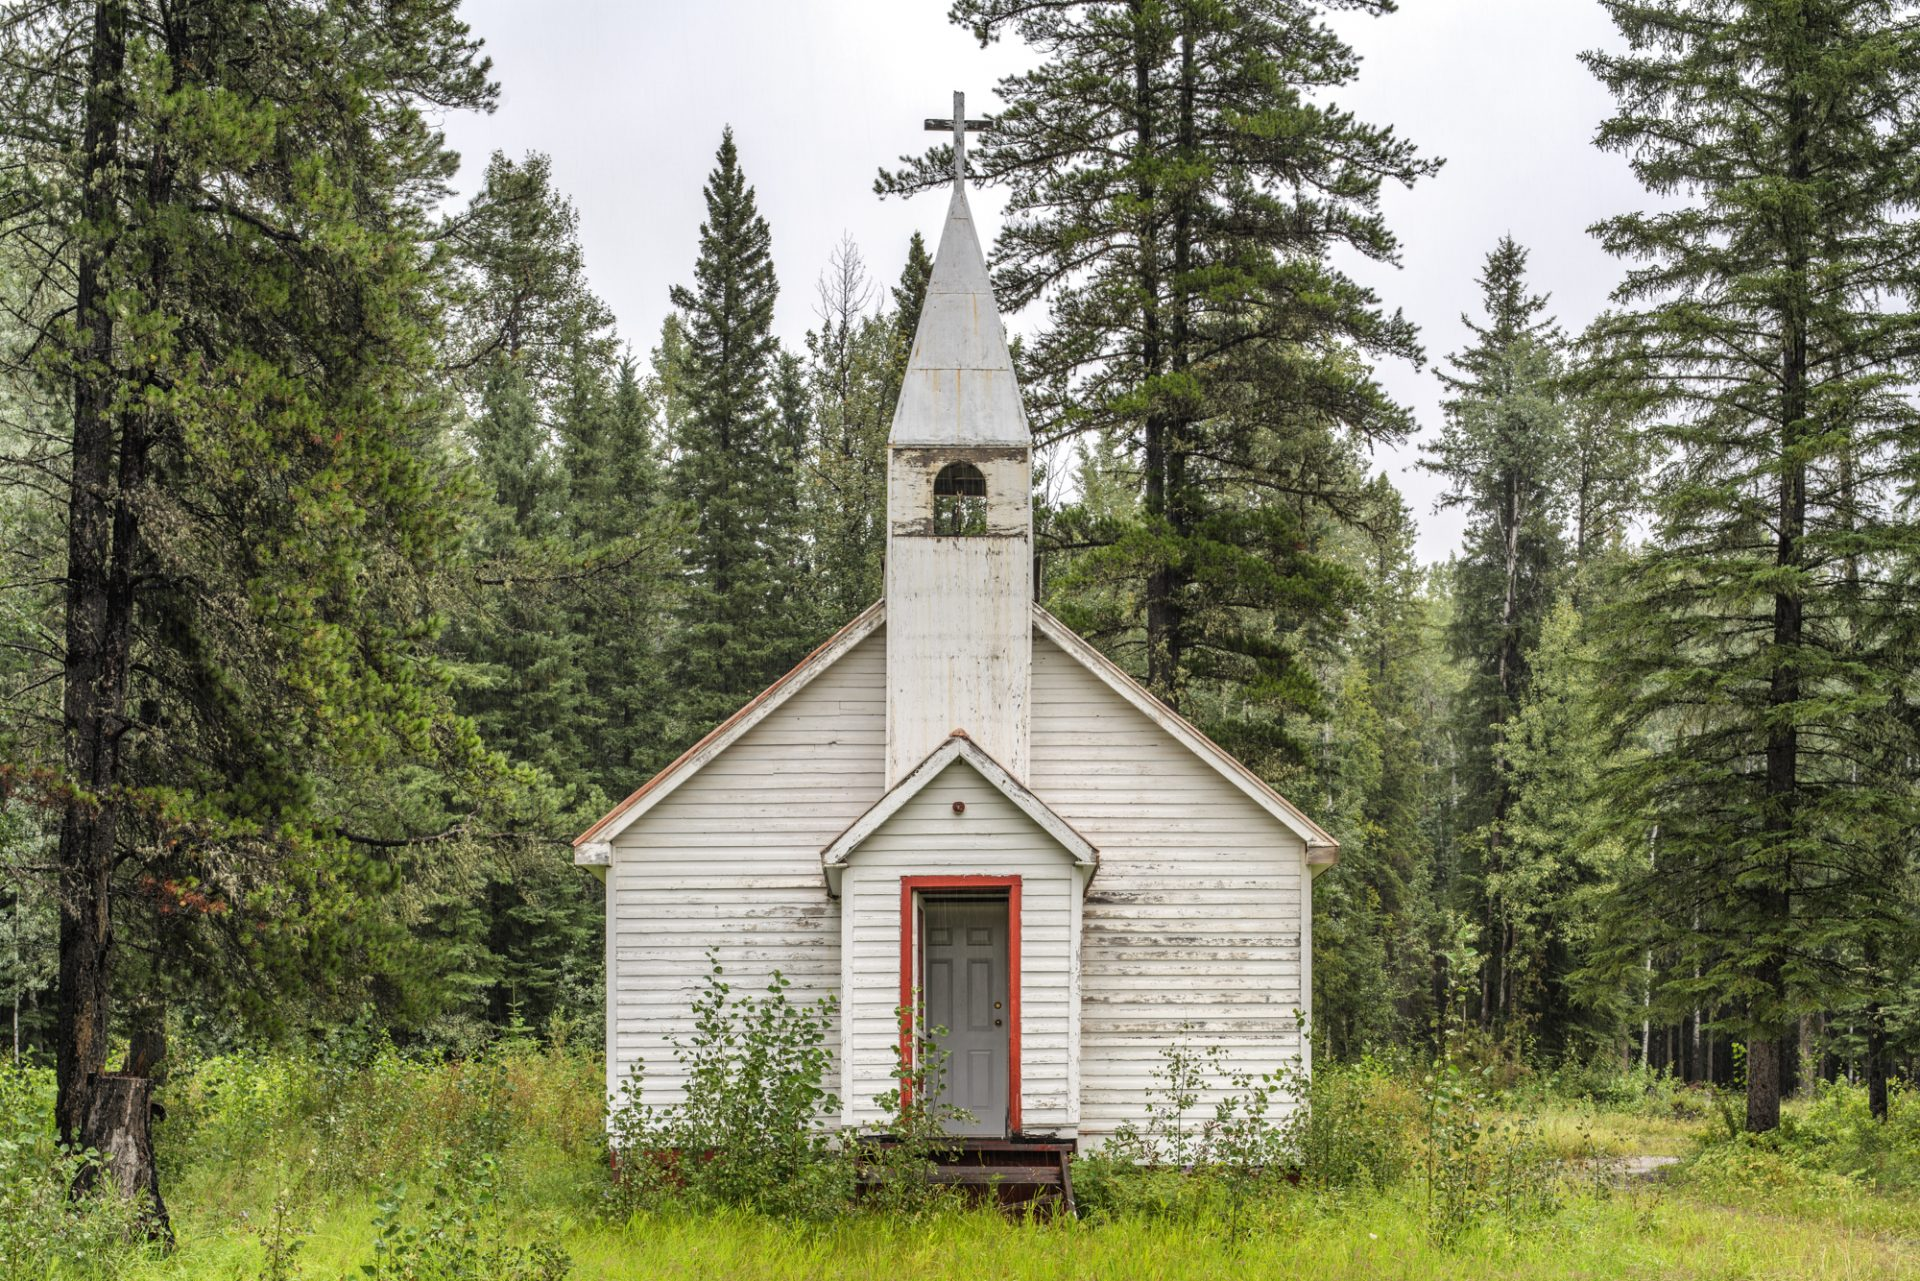 Church, Prophet River, British Columbia, August 8, 2019